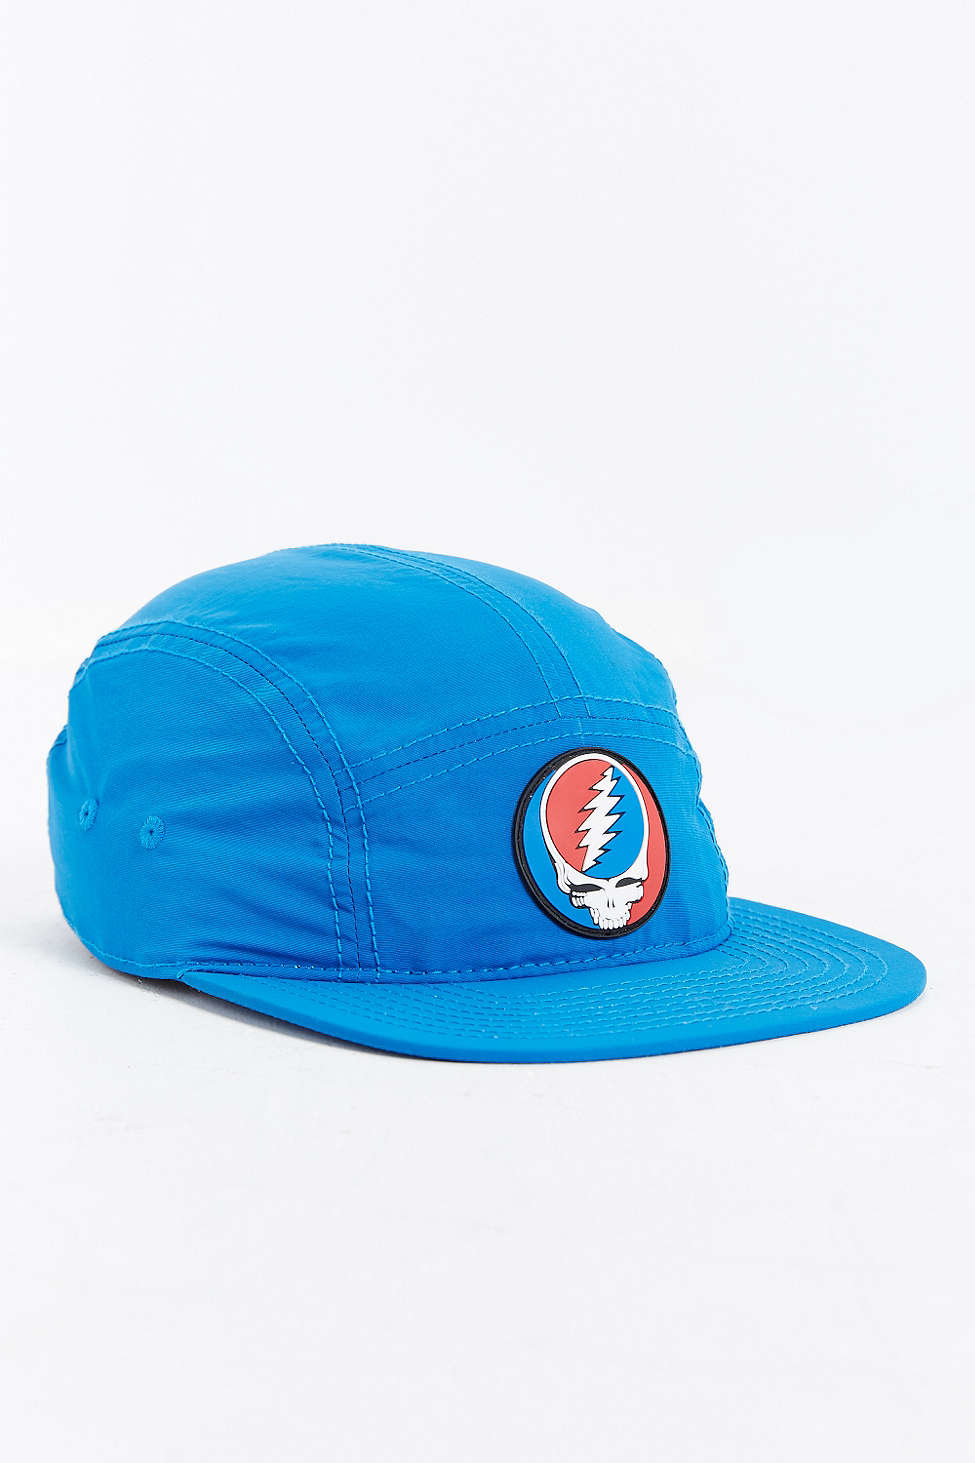 Lyst - Urban Outfitters Grateful Dead 5-panel Baseball Hat in Blue ... da8f47b84b1b